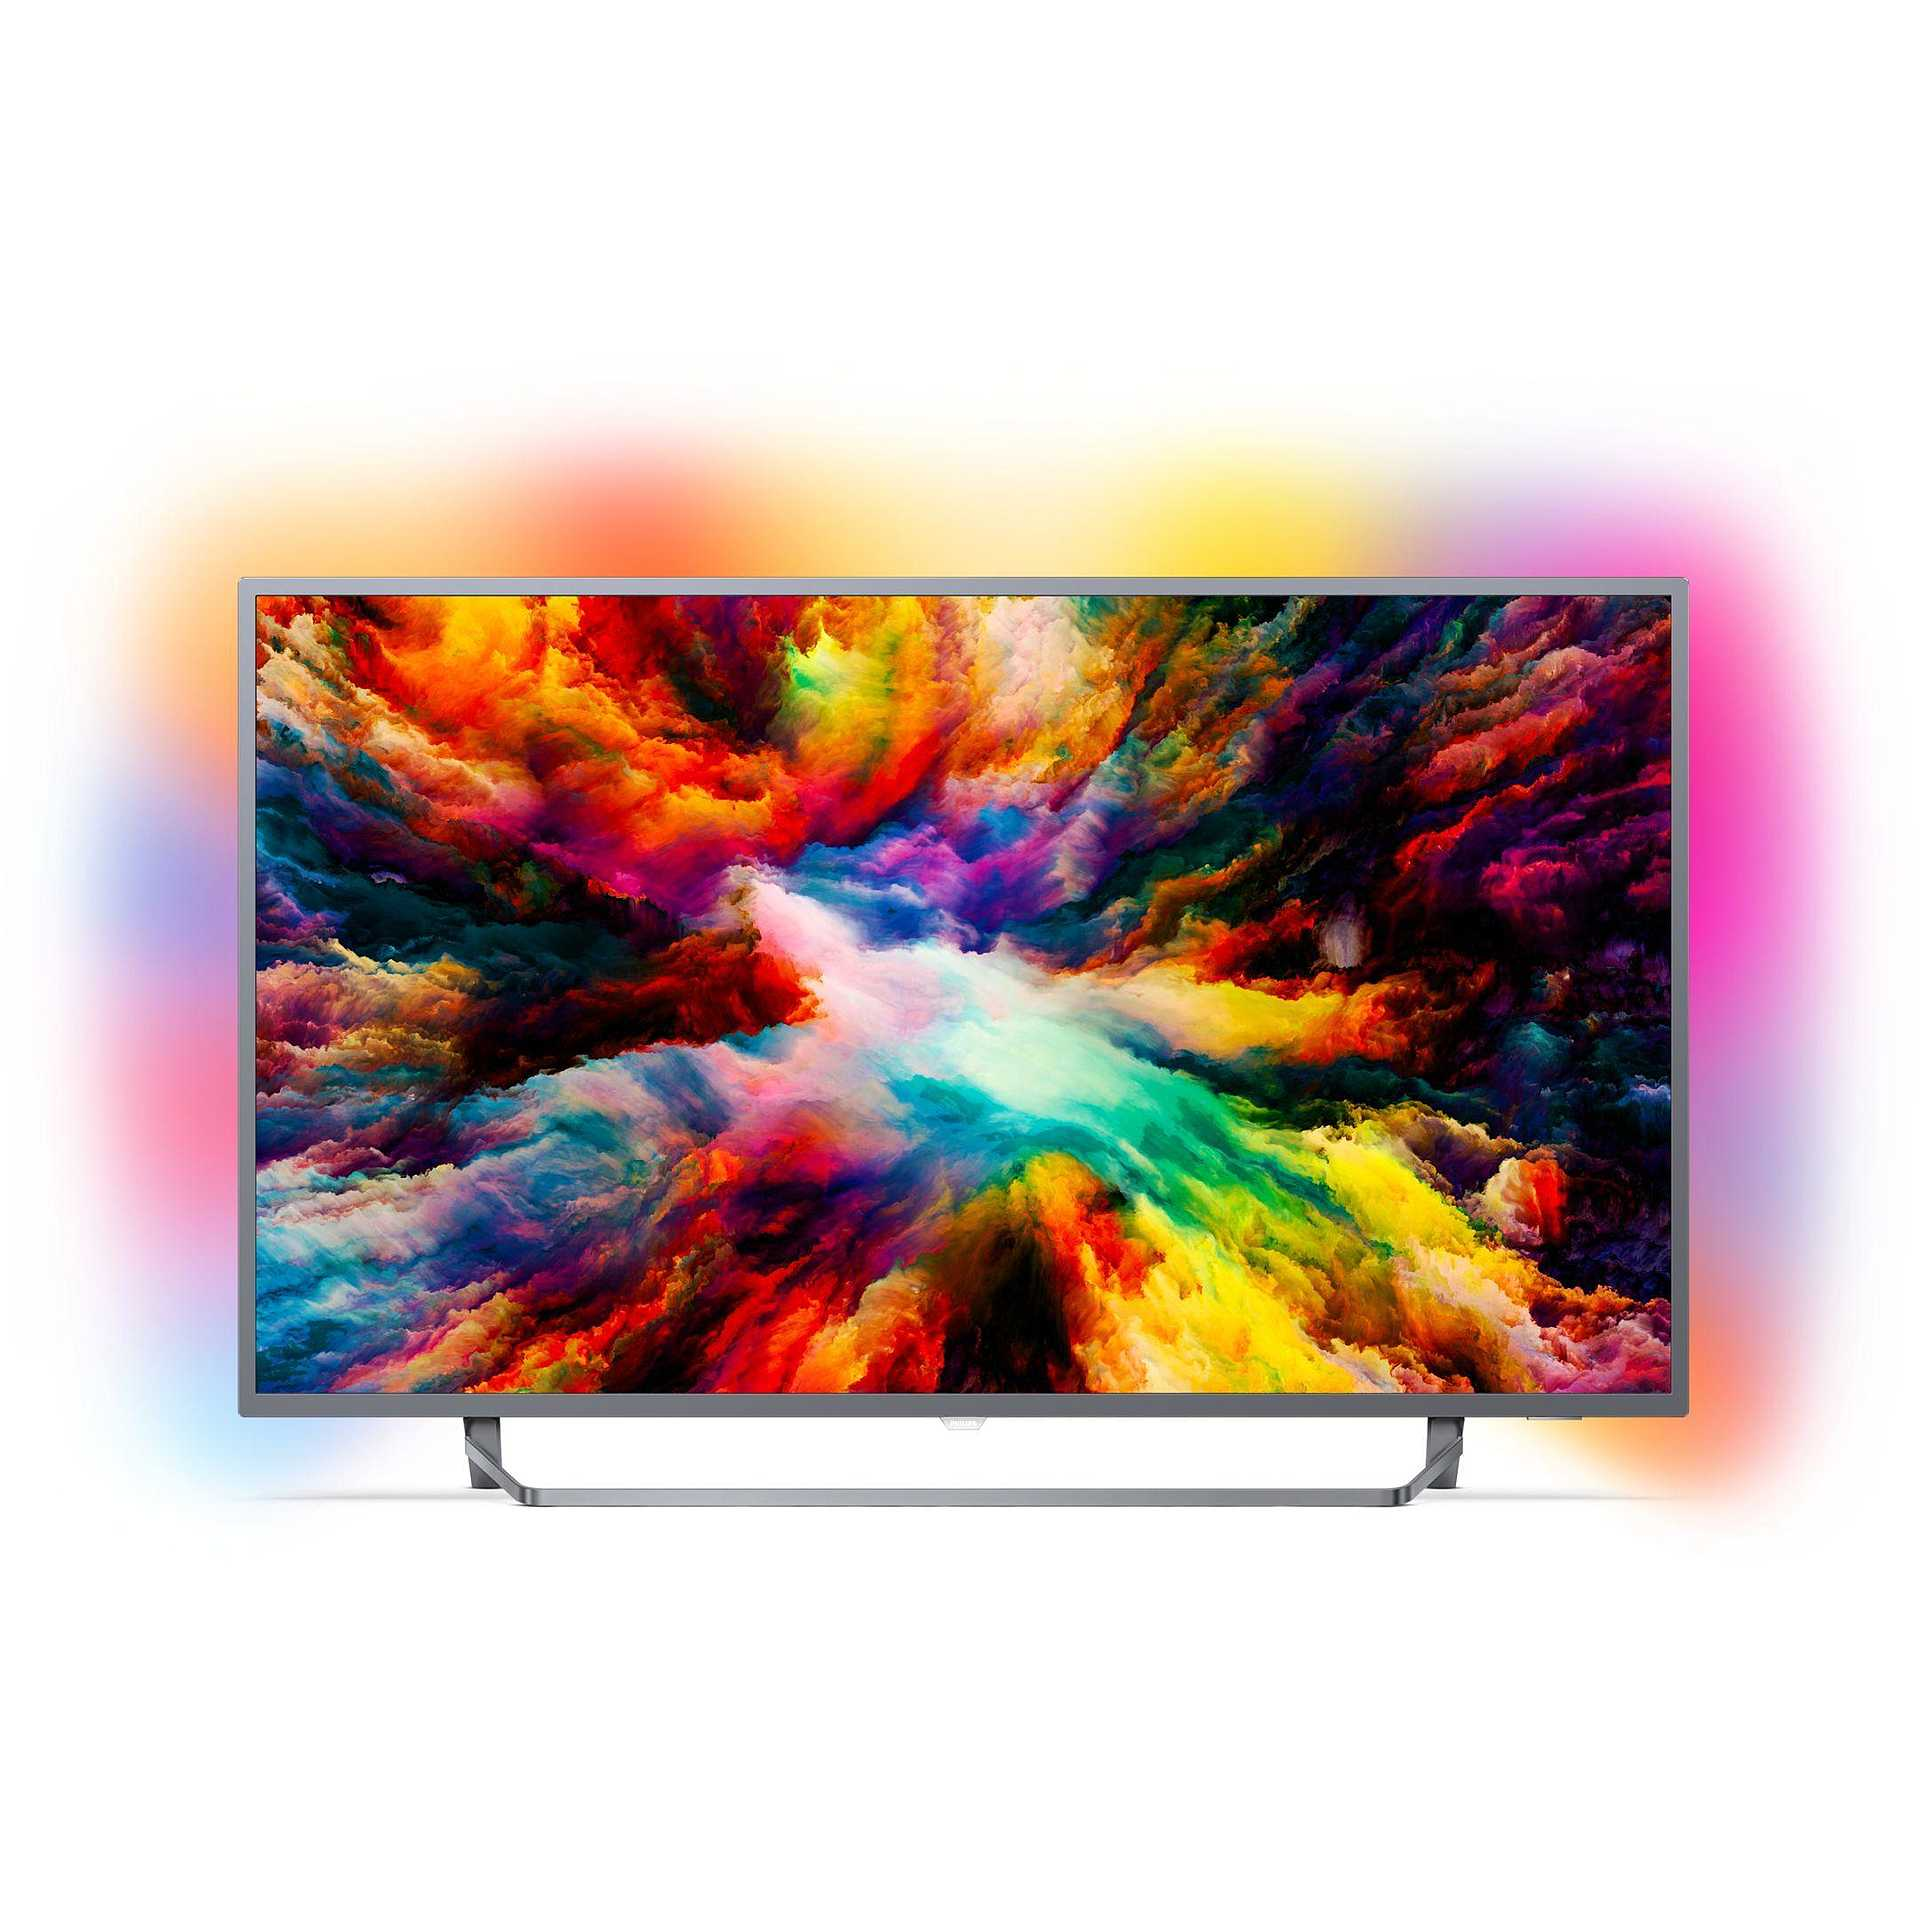 philips 55pus7303 12 tv led 55 4k ultra hd ambilight smart tv android tv classe a colore. Black Bedroom Furniture Sets. Home Design Ideas